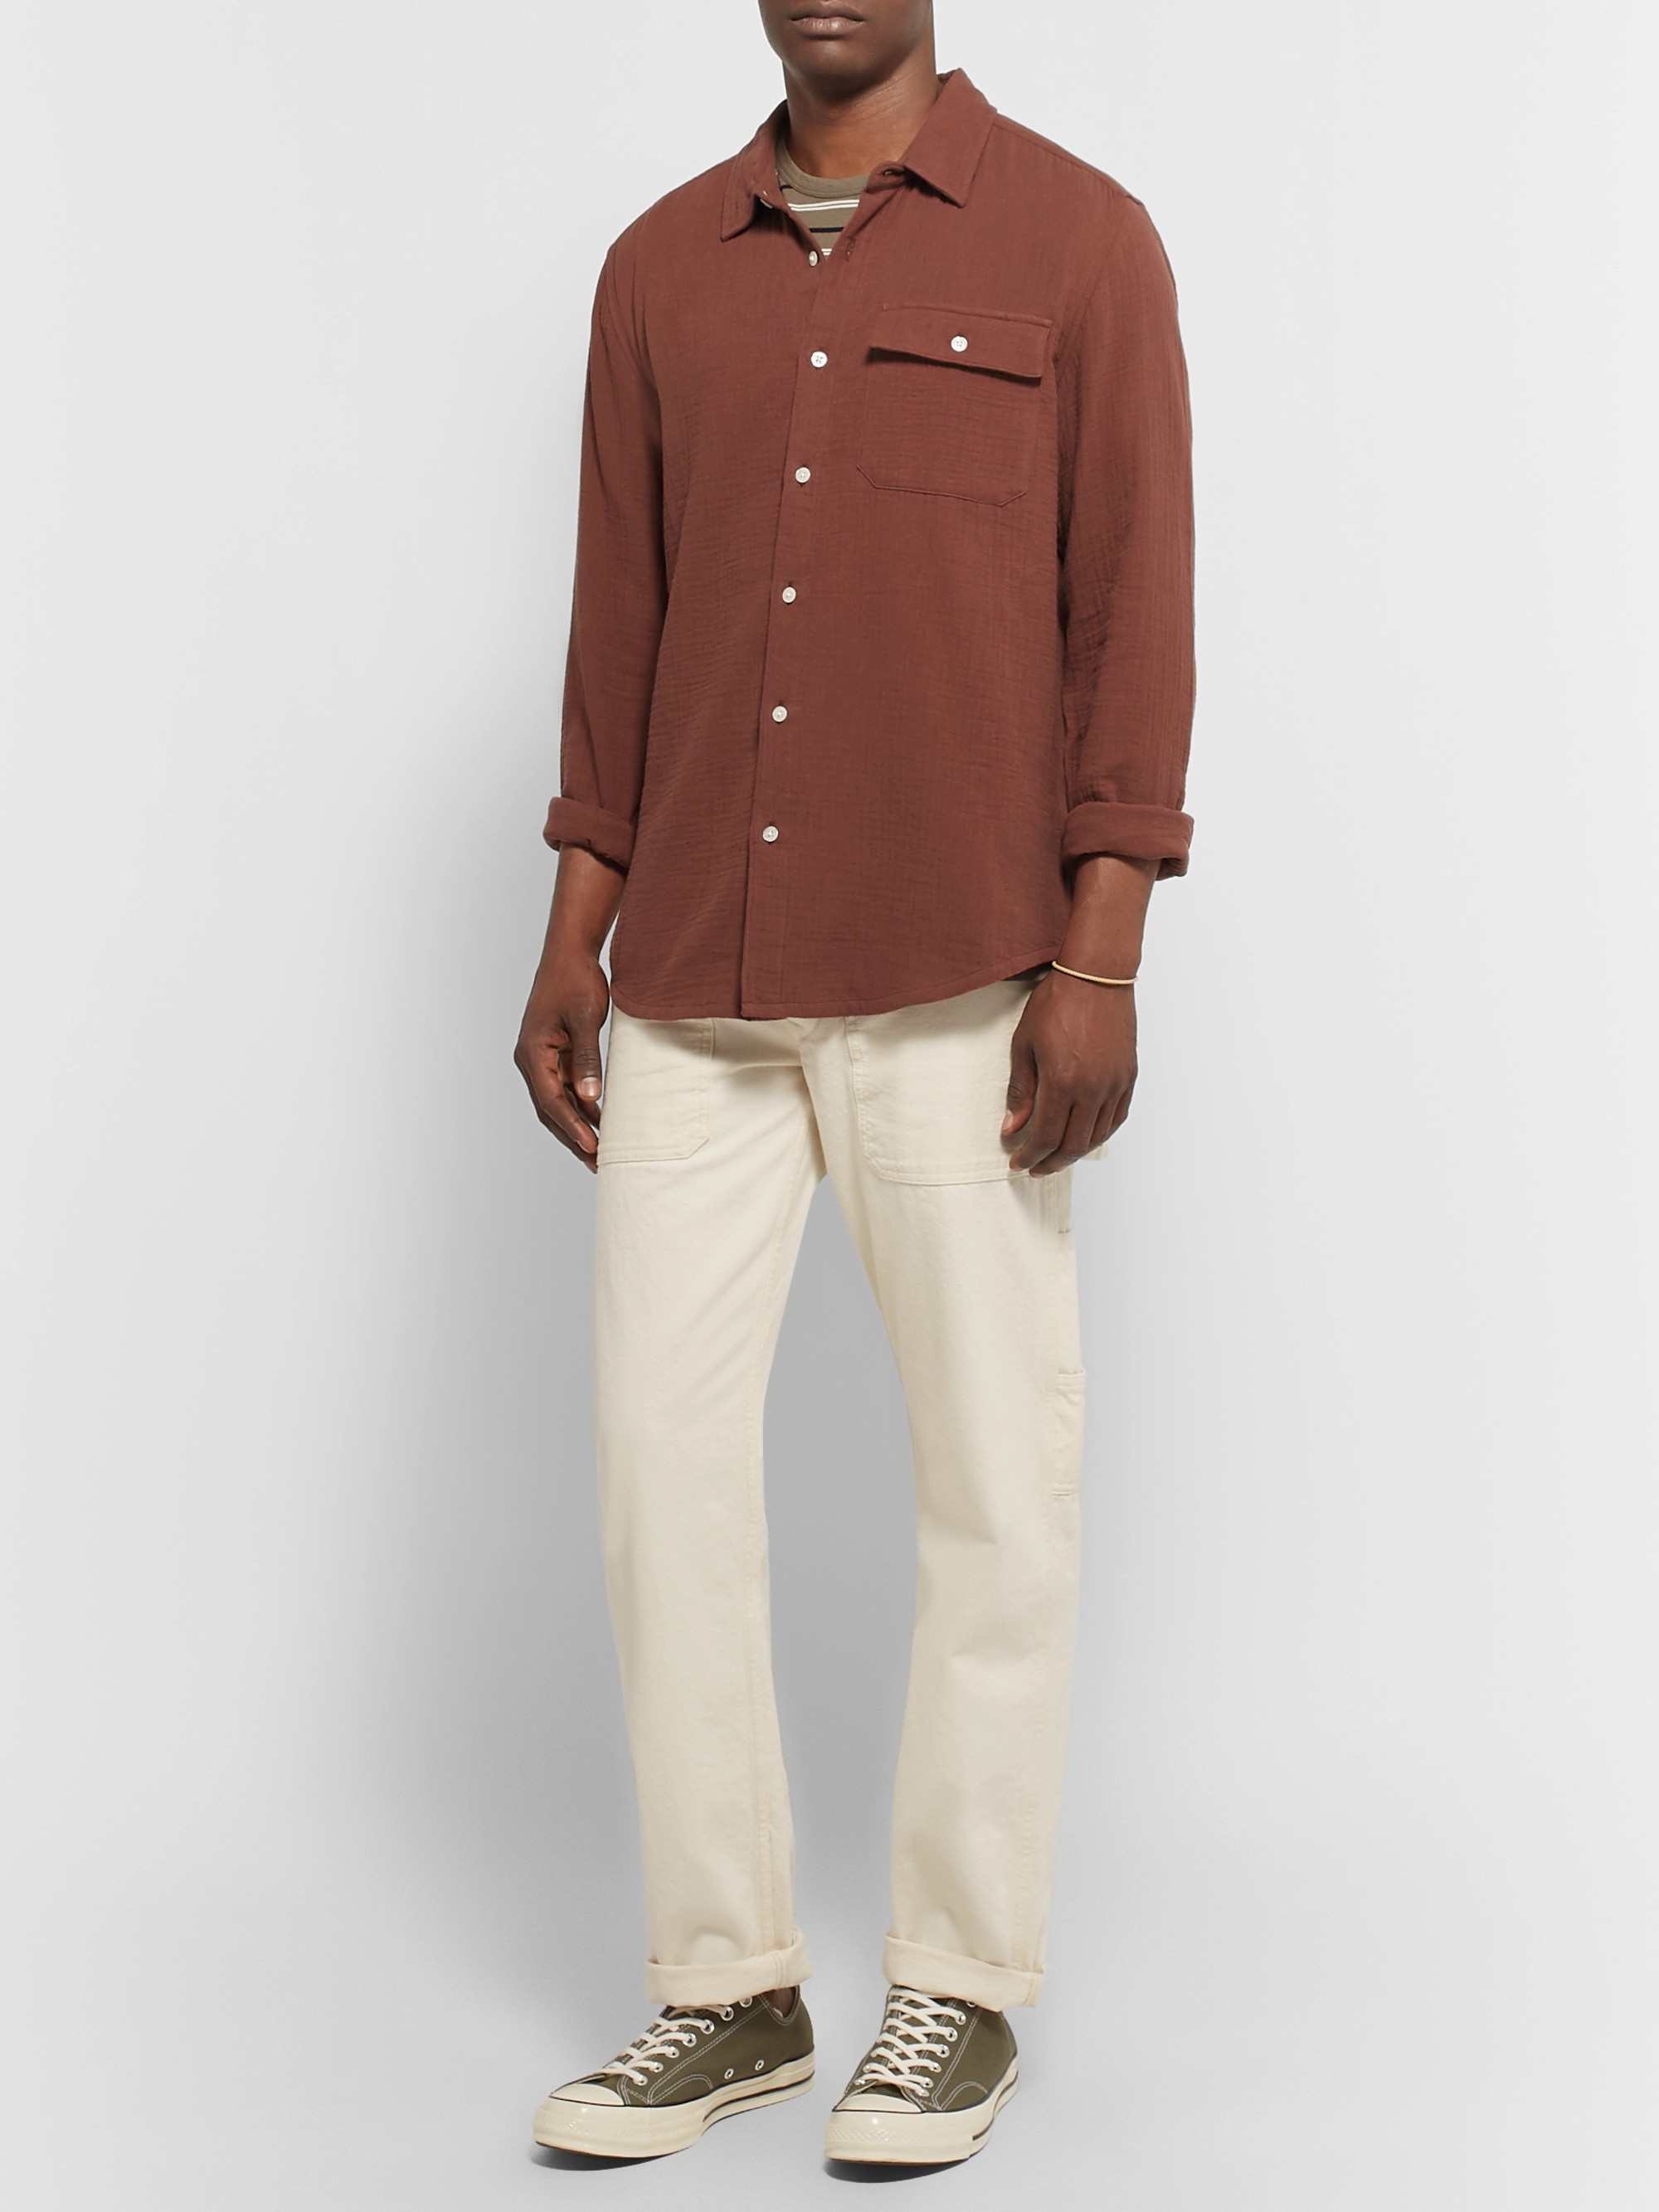 Outerknown Ocotillo Textured Organic Cotton Shirt